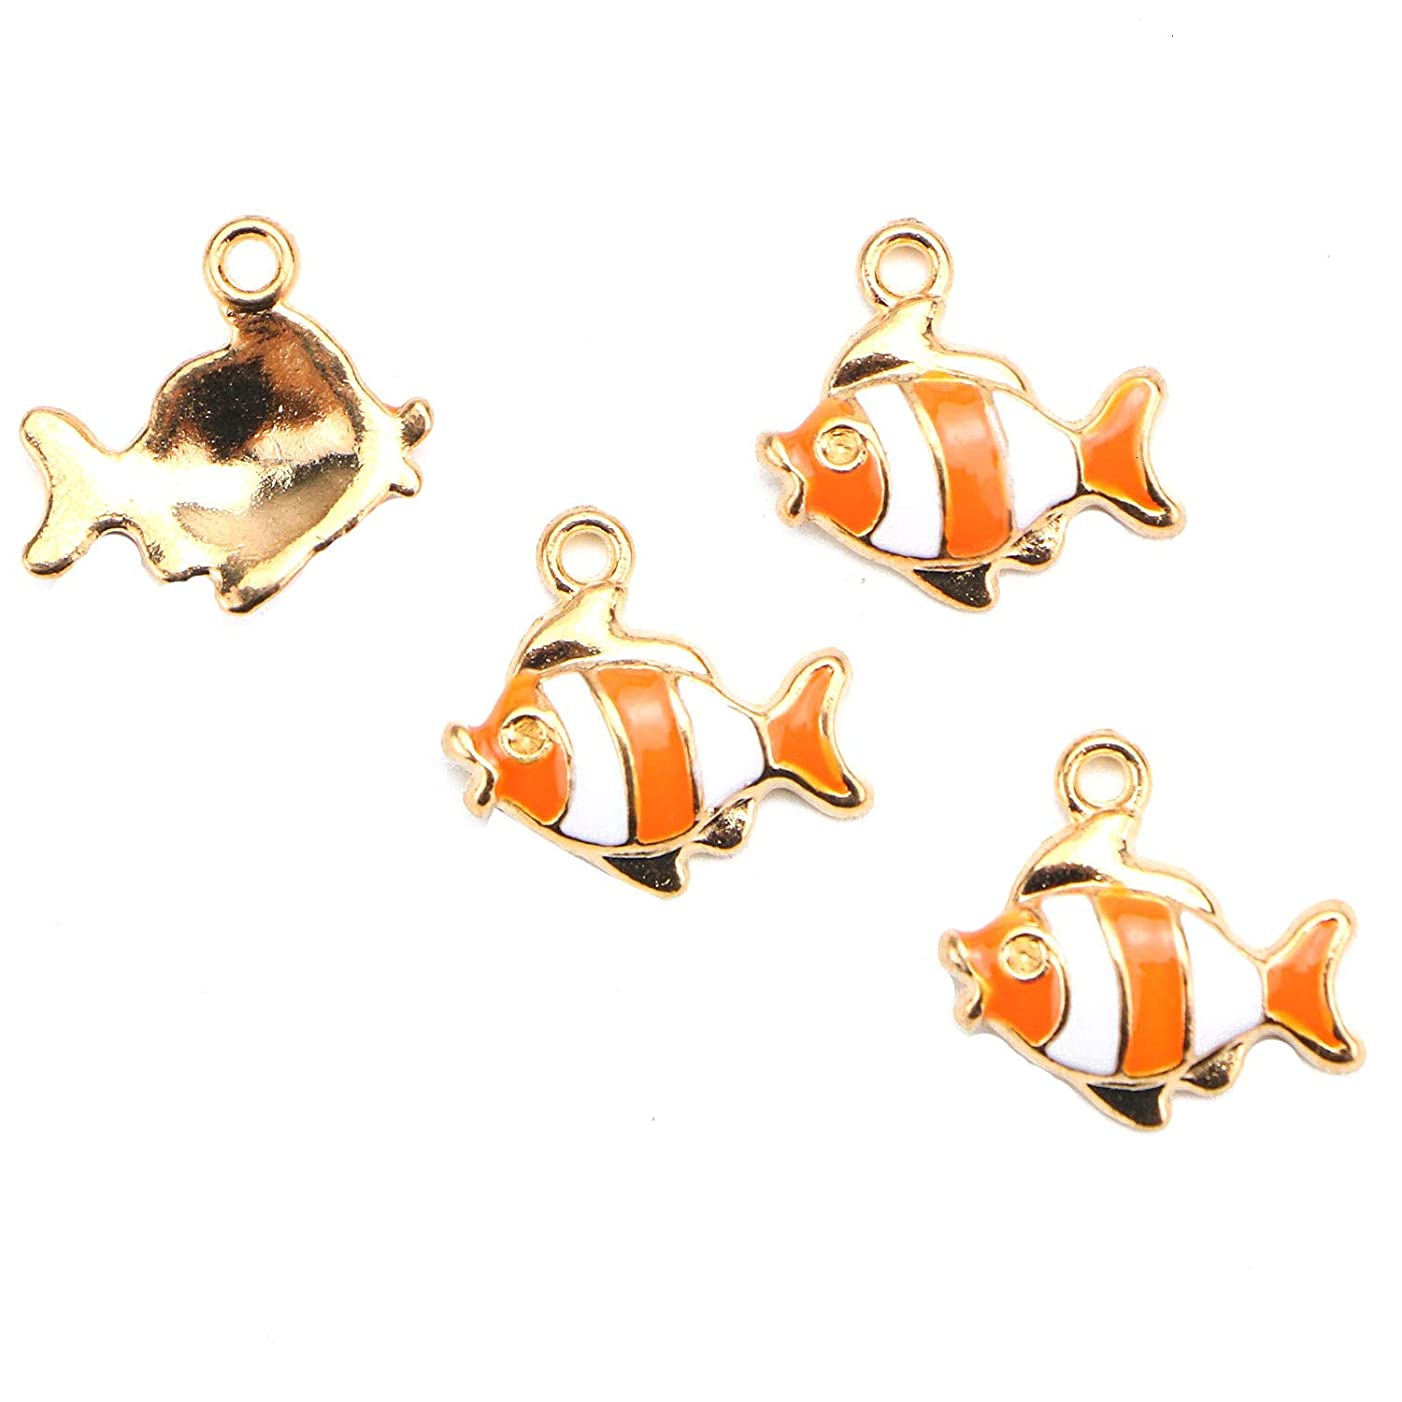 Monrocco 20 Pcs Enamel Fish Charms Sea Fish Tropical Fish Charms Pendant for Crafting Bracelets Jewelry Making